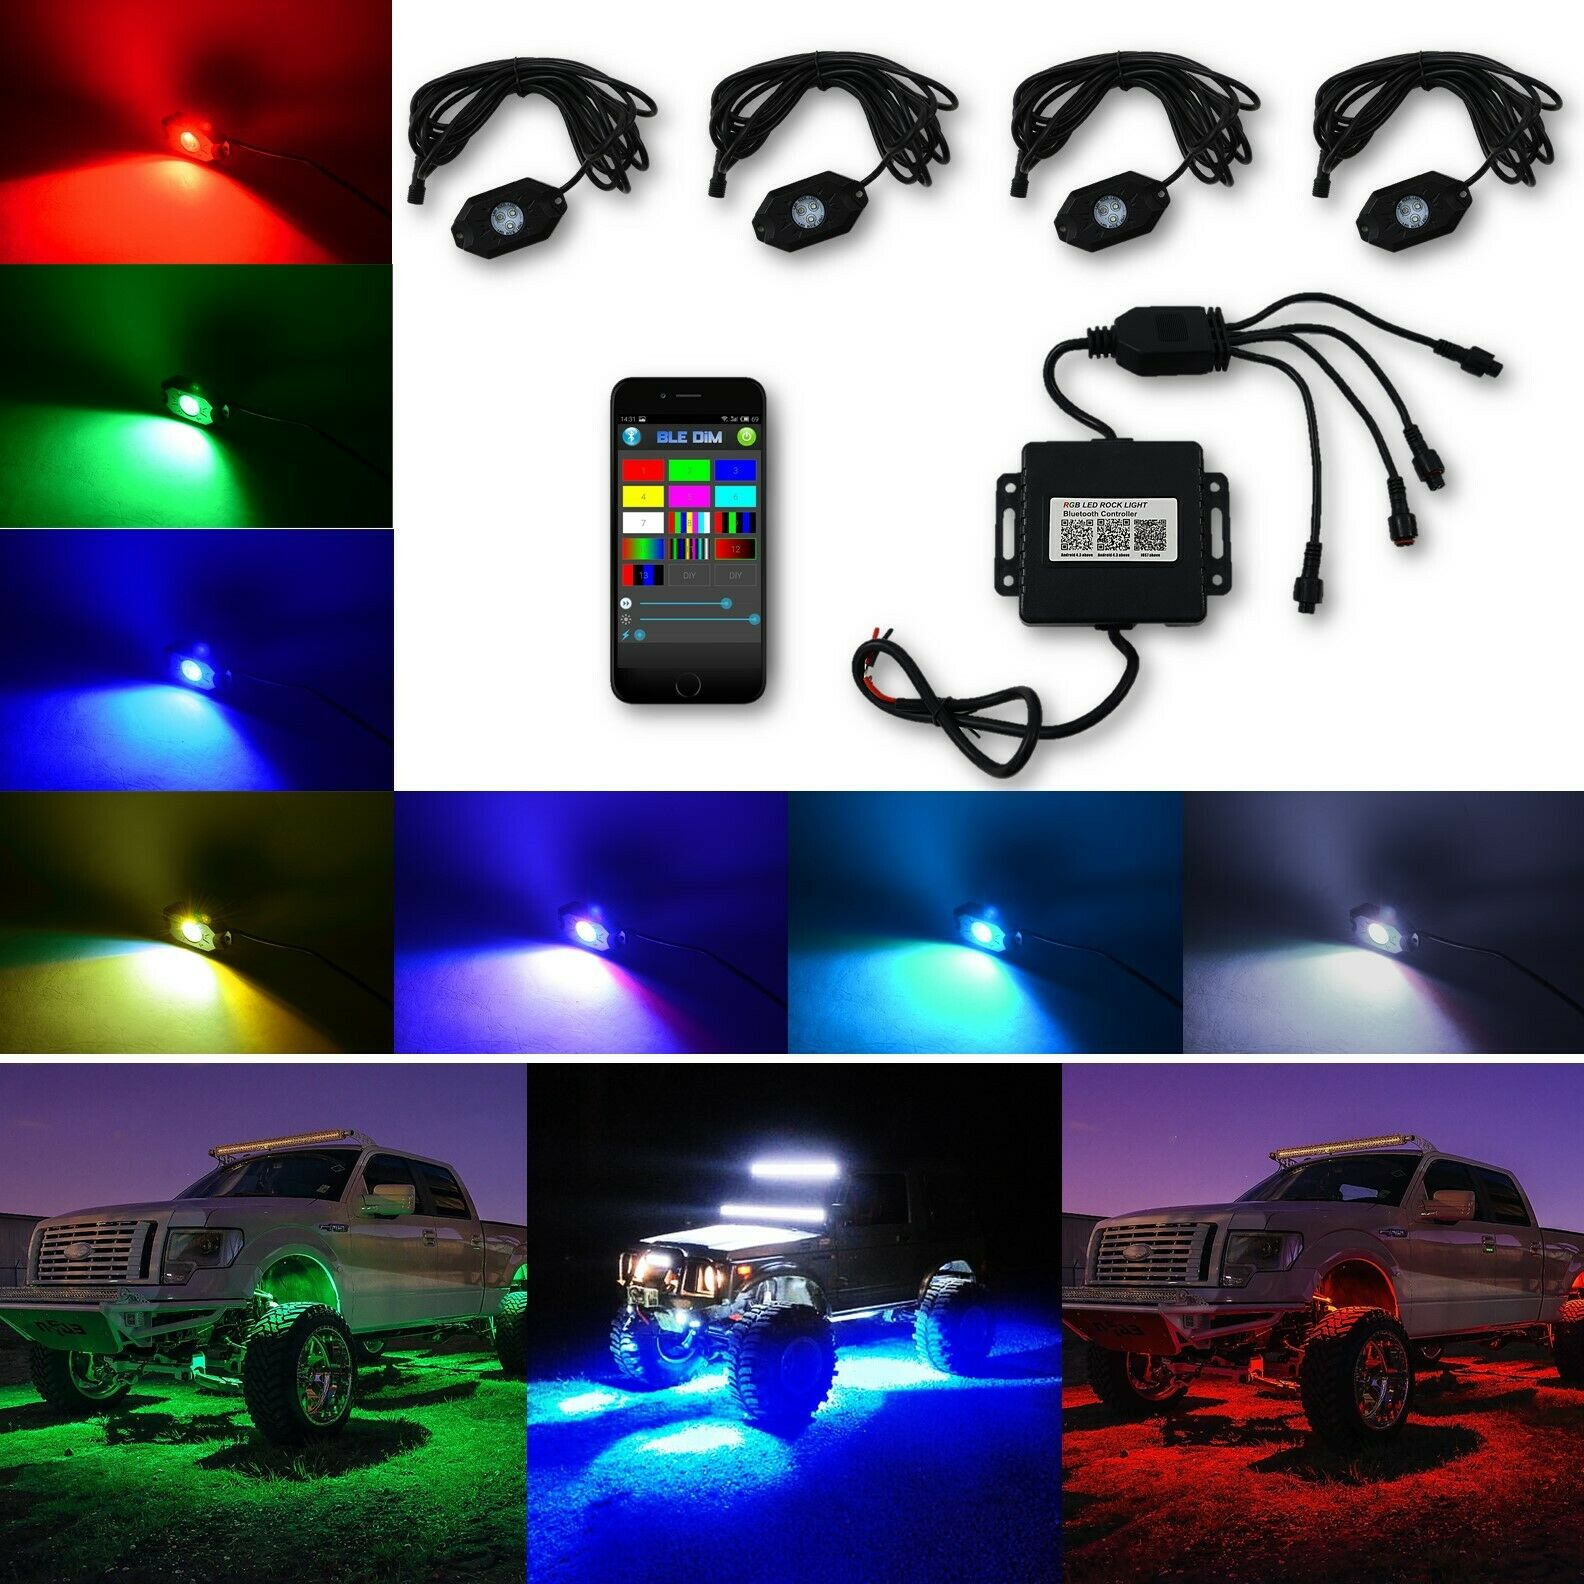 Truck Multi-Color Changing LED RGB SMD Rock Light Bluetooth Set of 4 Fits Jeep